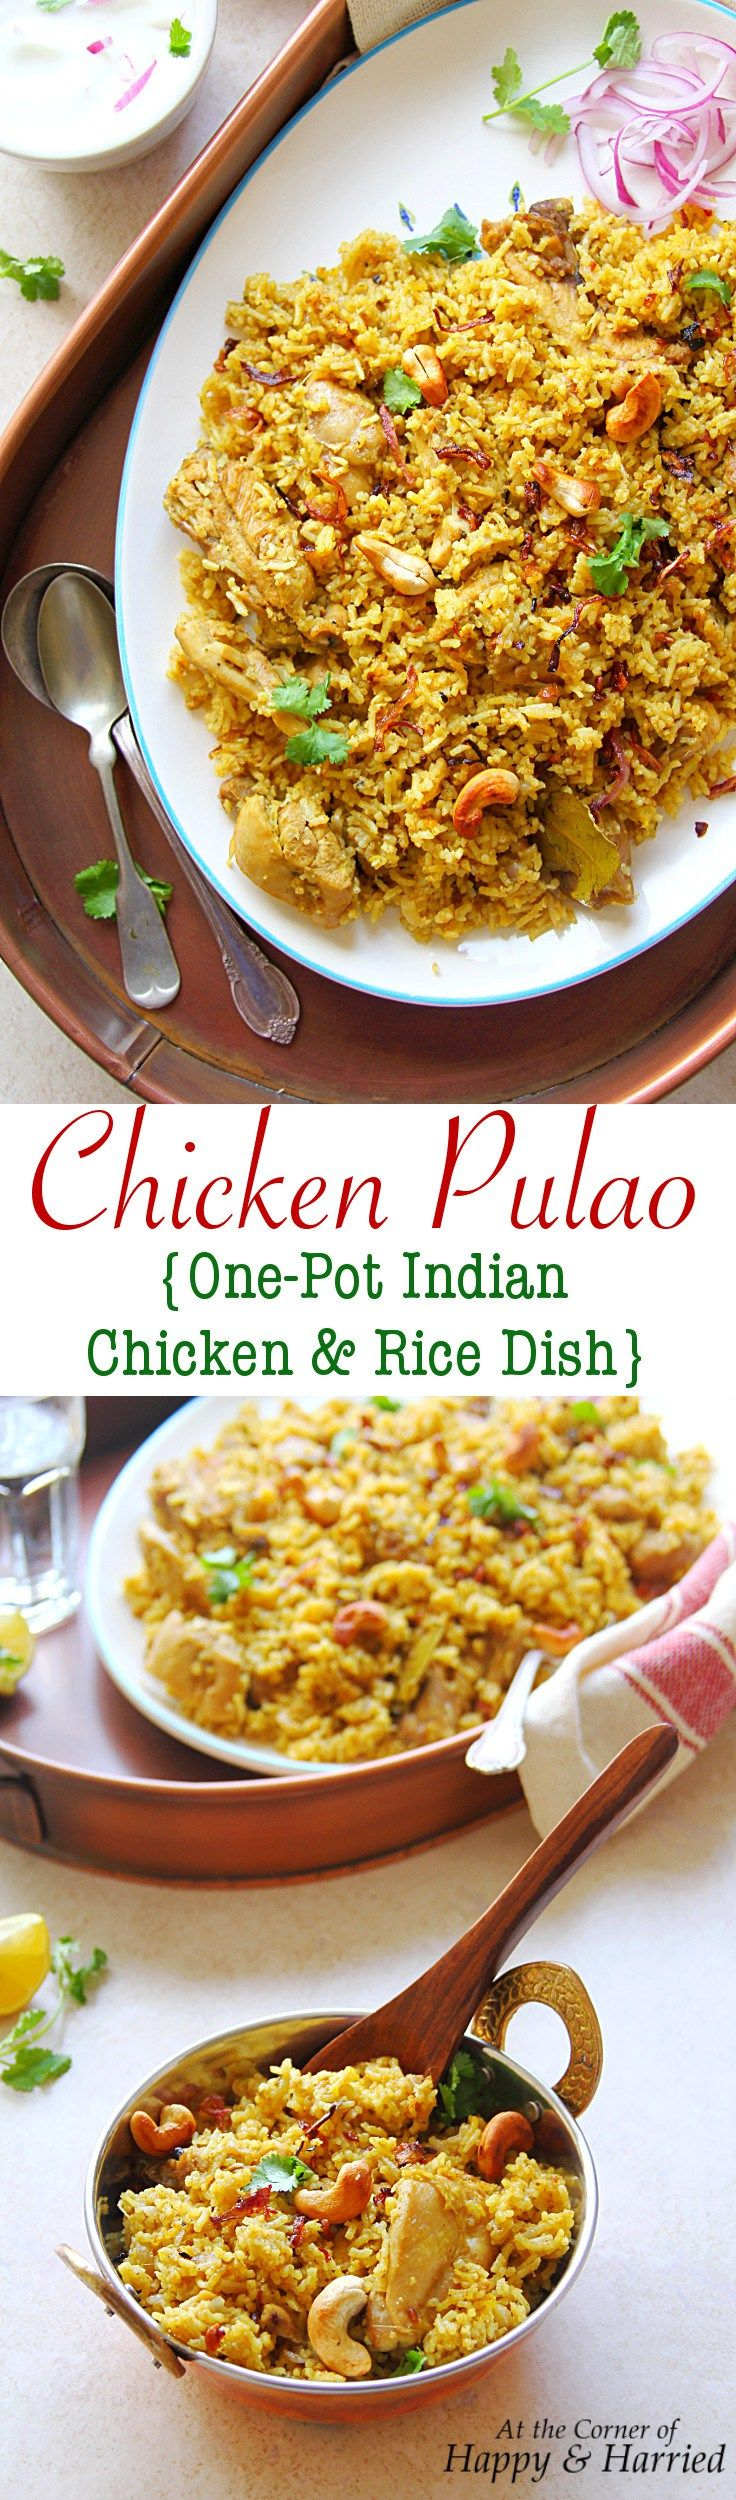 CHICKEN PULAO {ONE-POT INDIAN CHICKEN & RICE DISH} - HAPPY&HARRIED